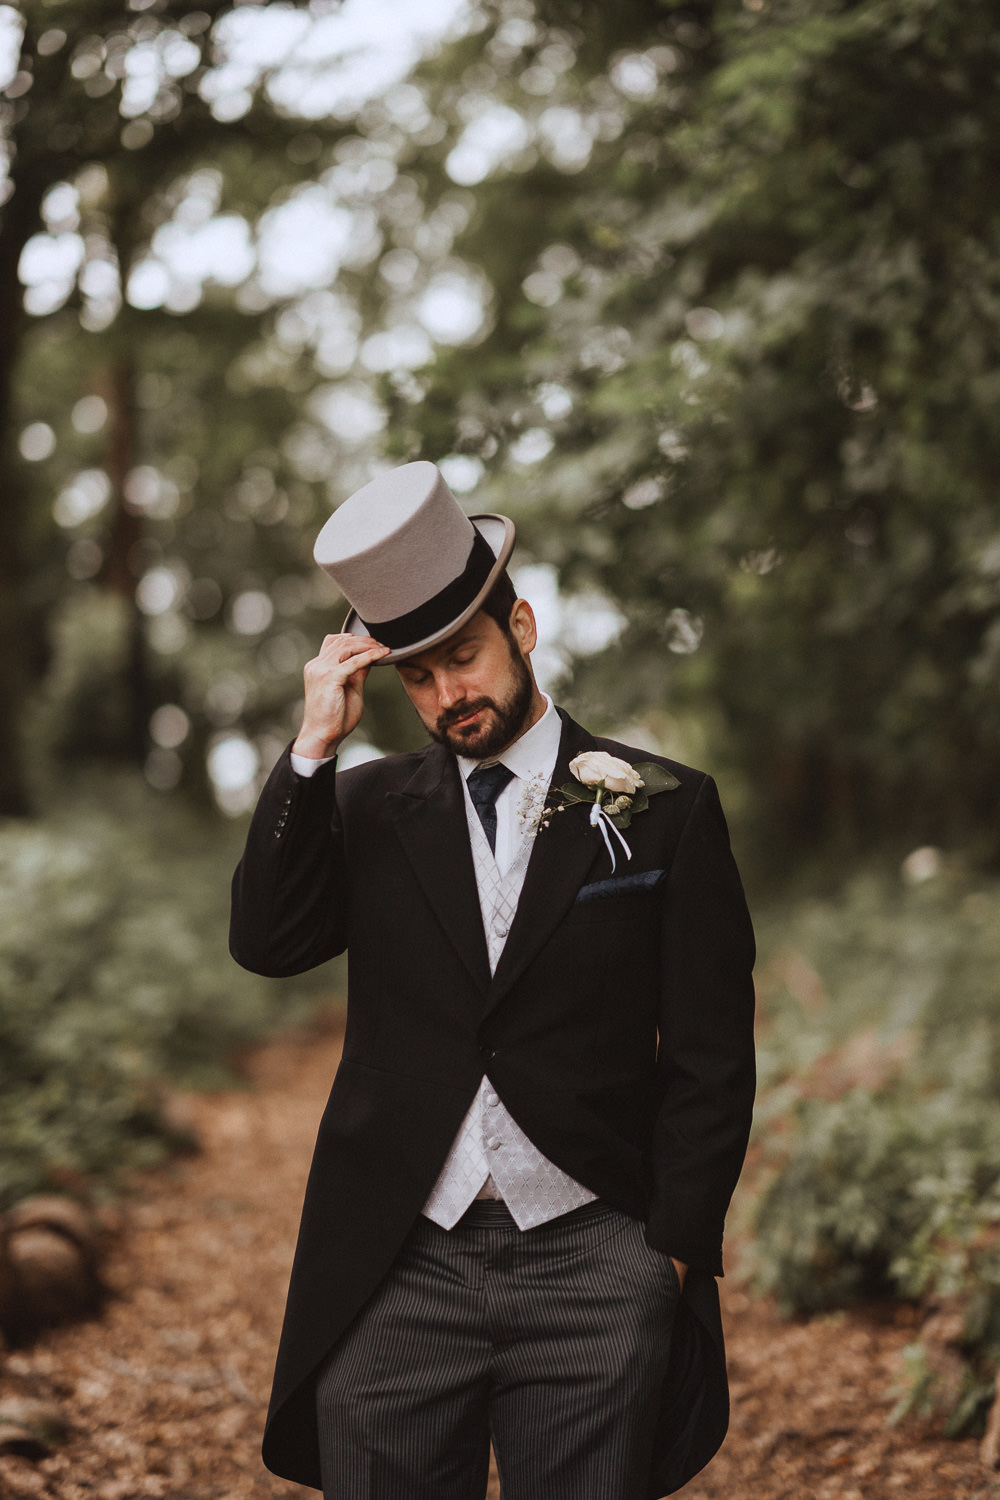 Nick doffing his hat at Inglewood Manor, Cheshire